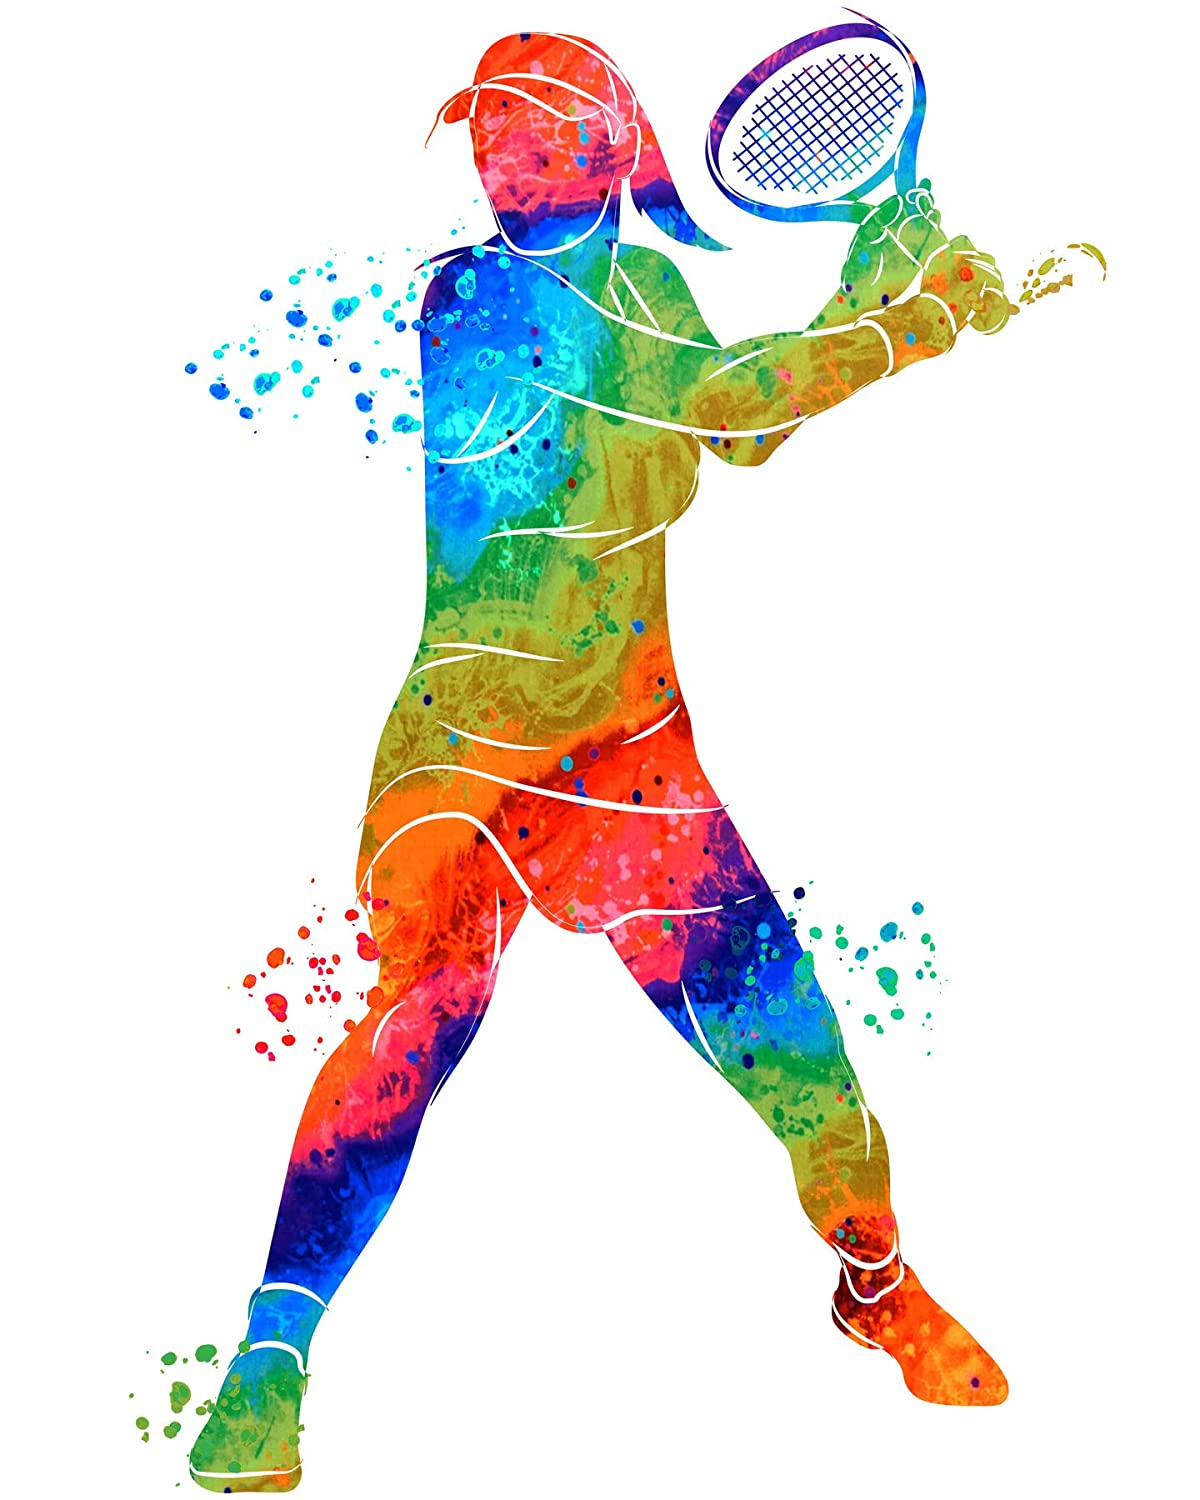 Gifts for tennis player women - Tennis Wall Art Gift for Her - Watercolor Vibrant Sports Posters - Long Tennis Workout room decor - Abstract decor for Girls bedroom…